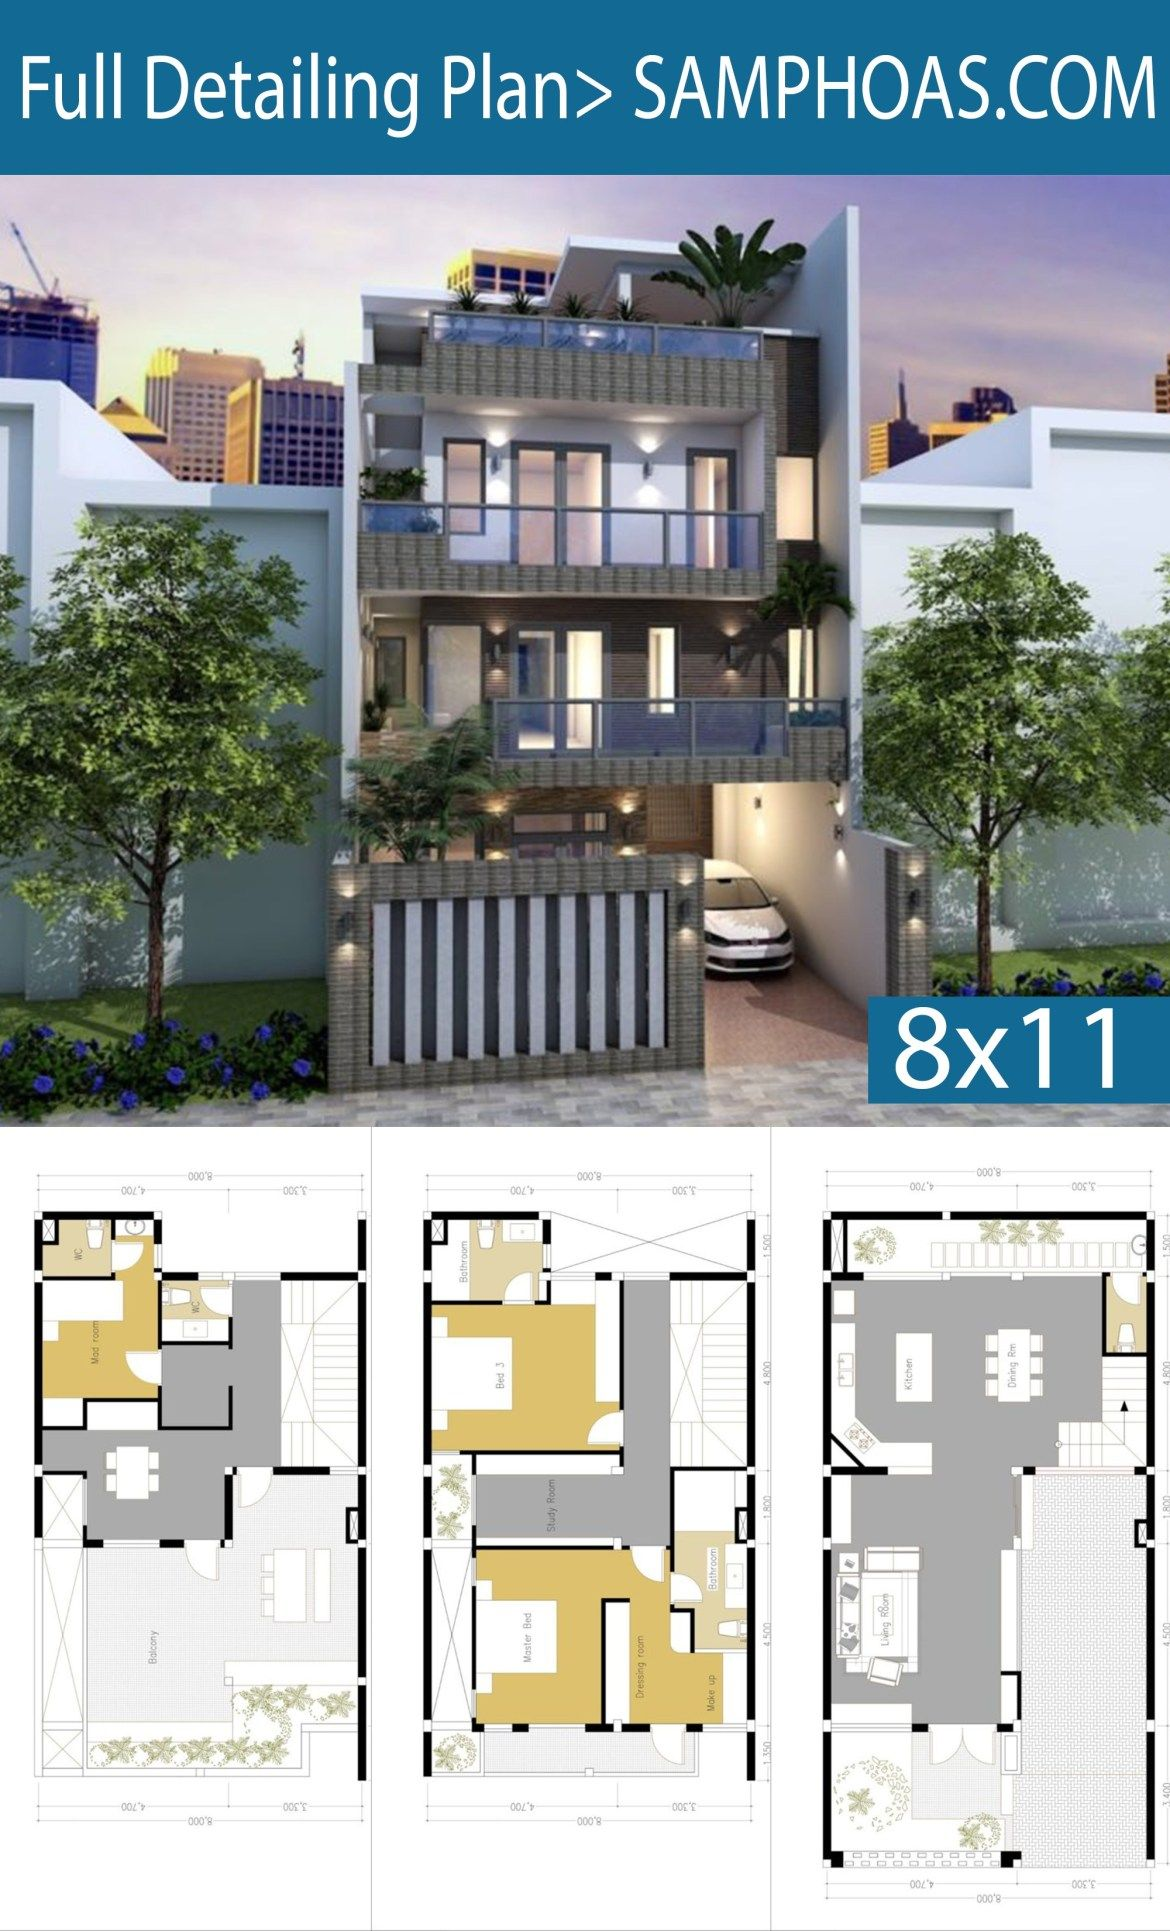 5 Bedroom 4 Story House Plan 8x11m Samphoas Plansearch Free House Design House Plans How To Plan